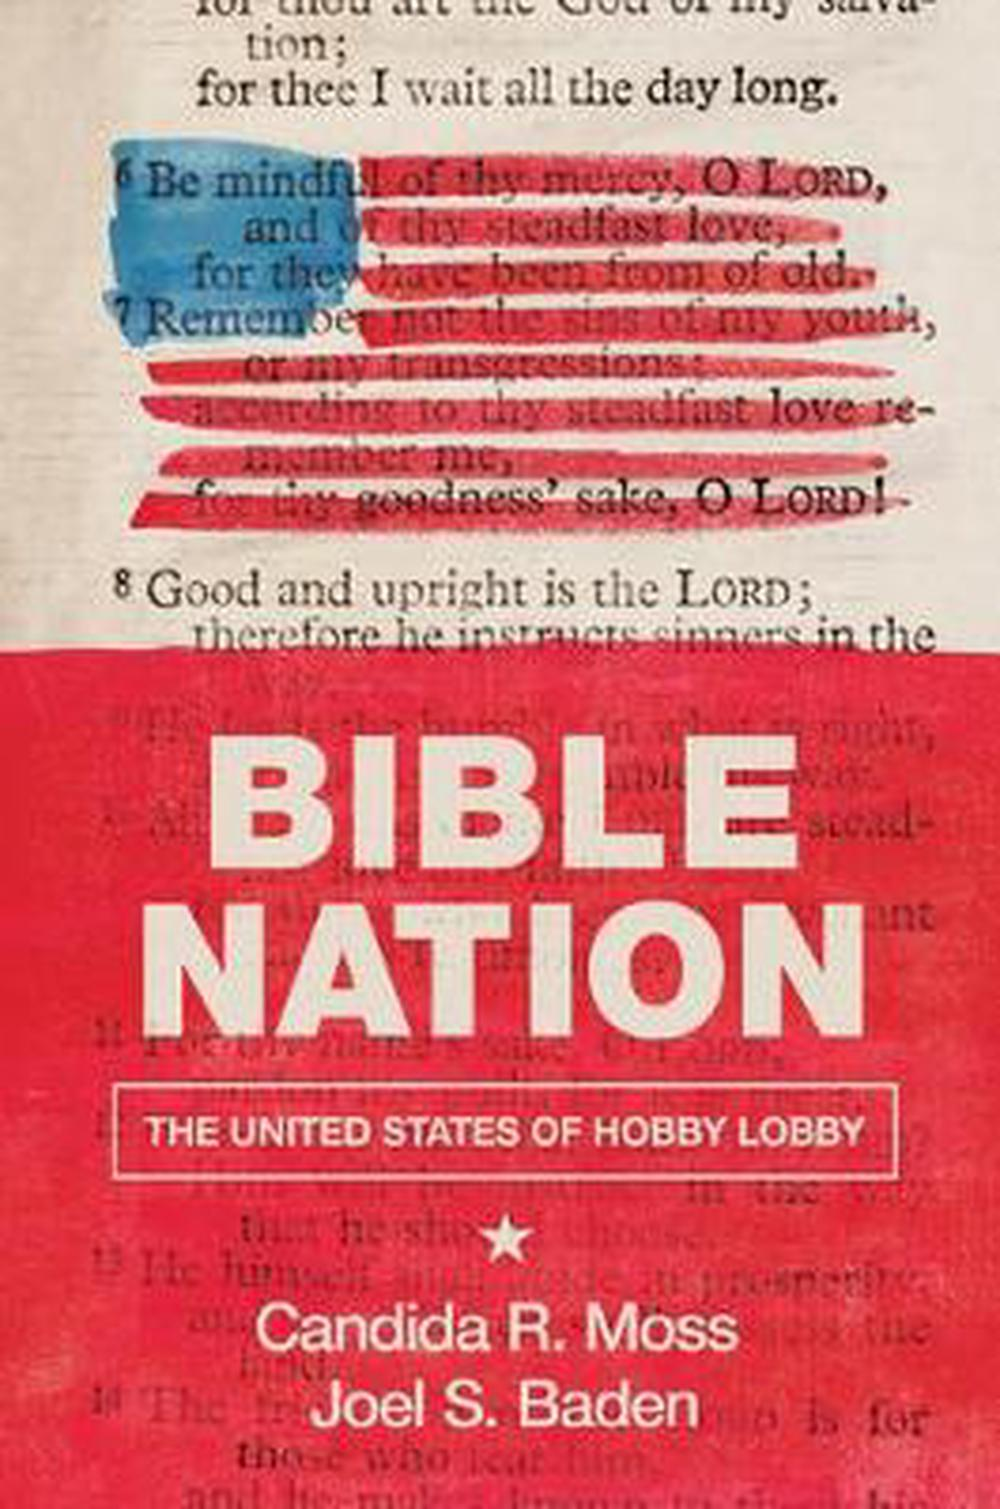 Bible NationThe United States of Hobby Lobby by Candida R. Moss,Joel S. Baden, ISBN: 9780691177359